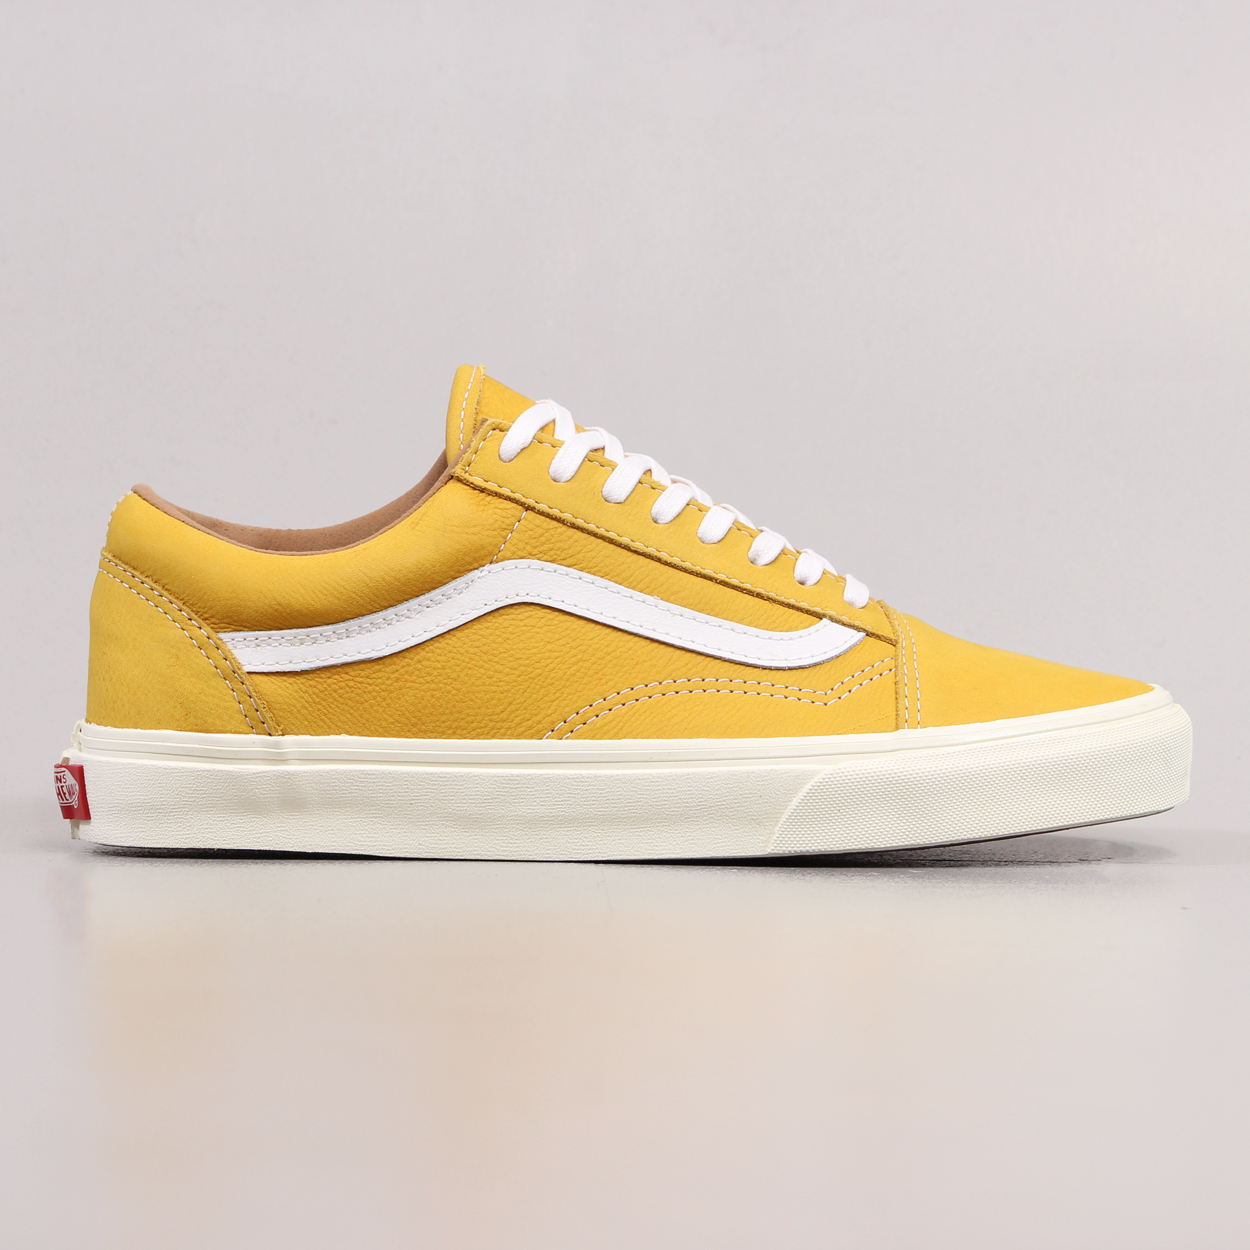 23c8f236a9def9 Vans Old Skool Reissue Mens Shoes Classic Leather Mineral Yellow £48.75